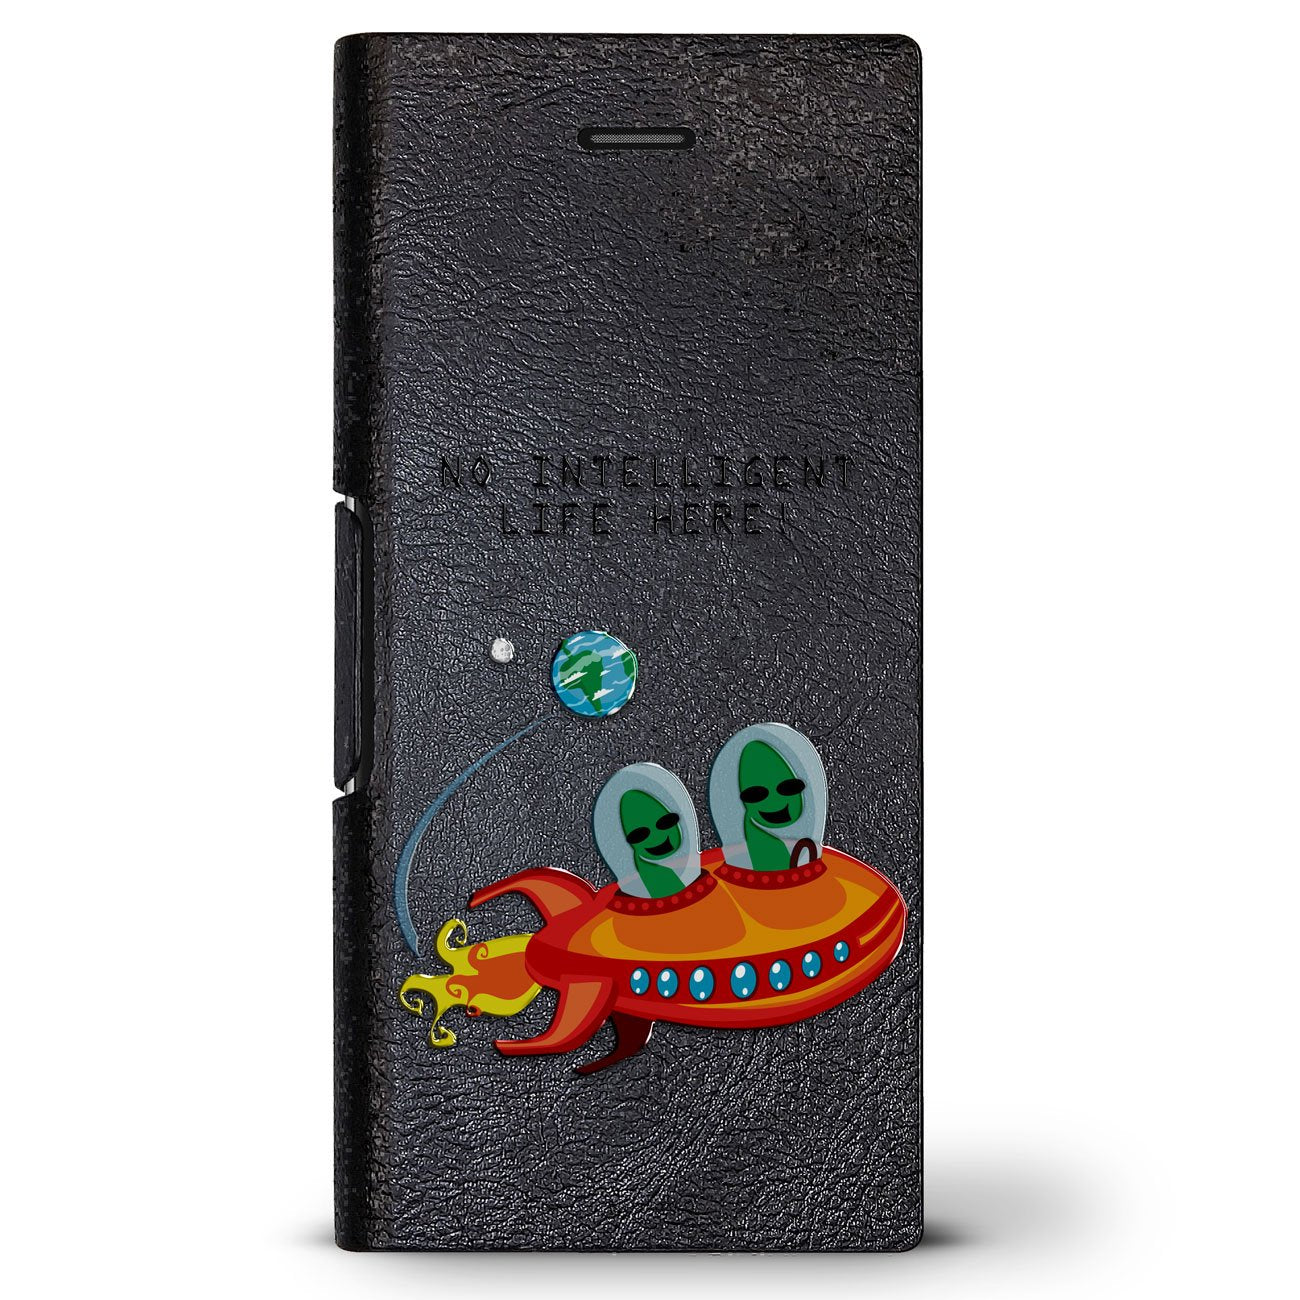 Aliens on Spaceship Quote | Leather Series case for iPhone 8/7/6/6s in Hickory Black